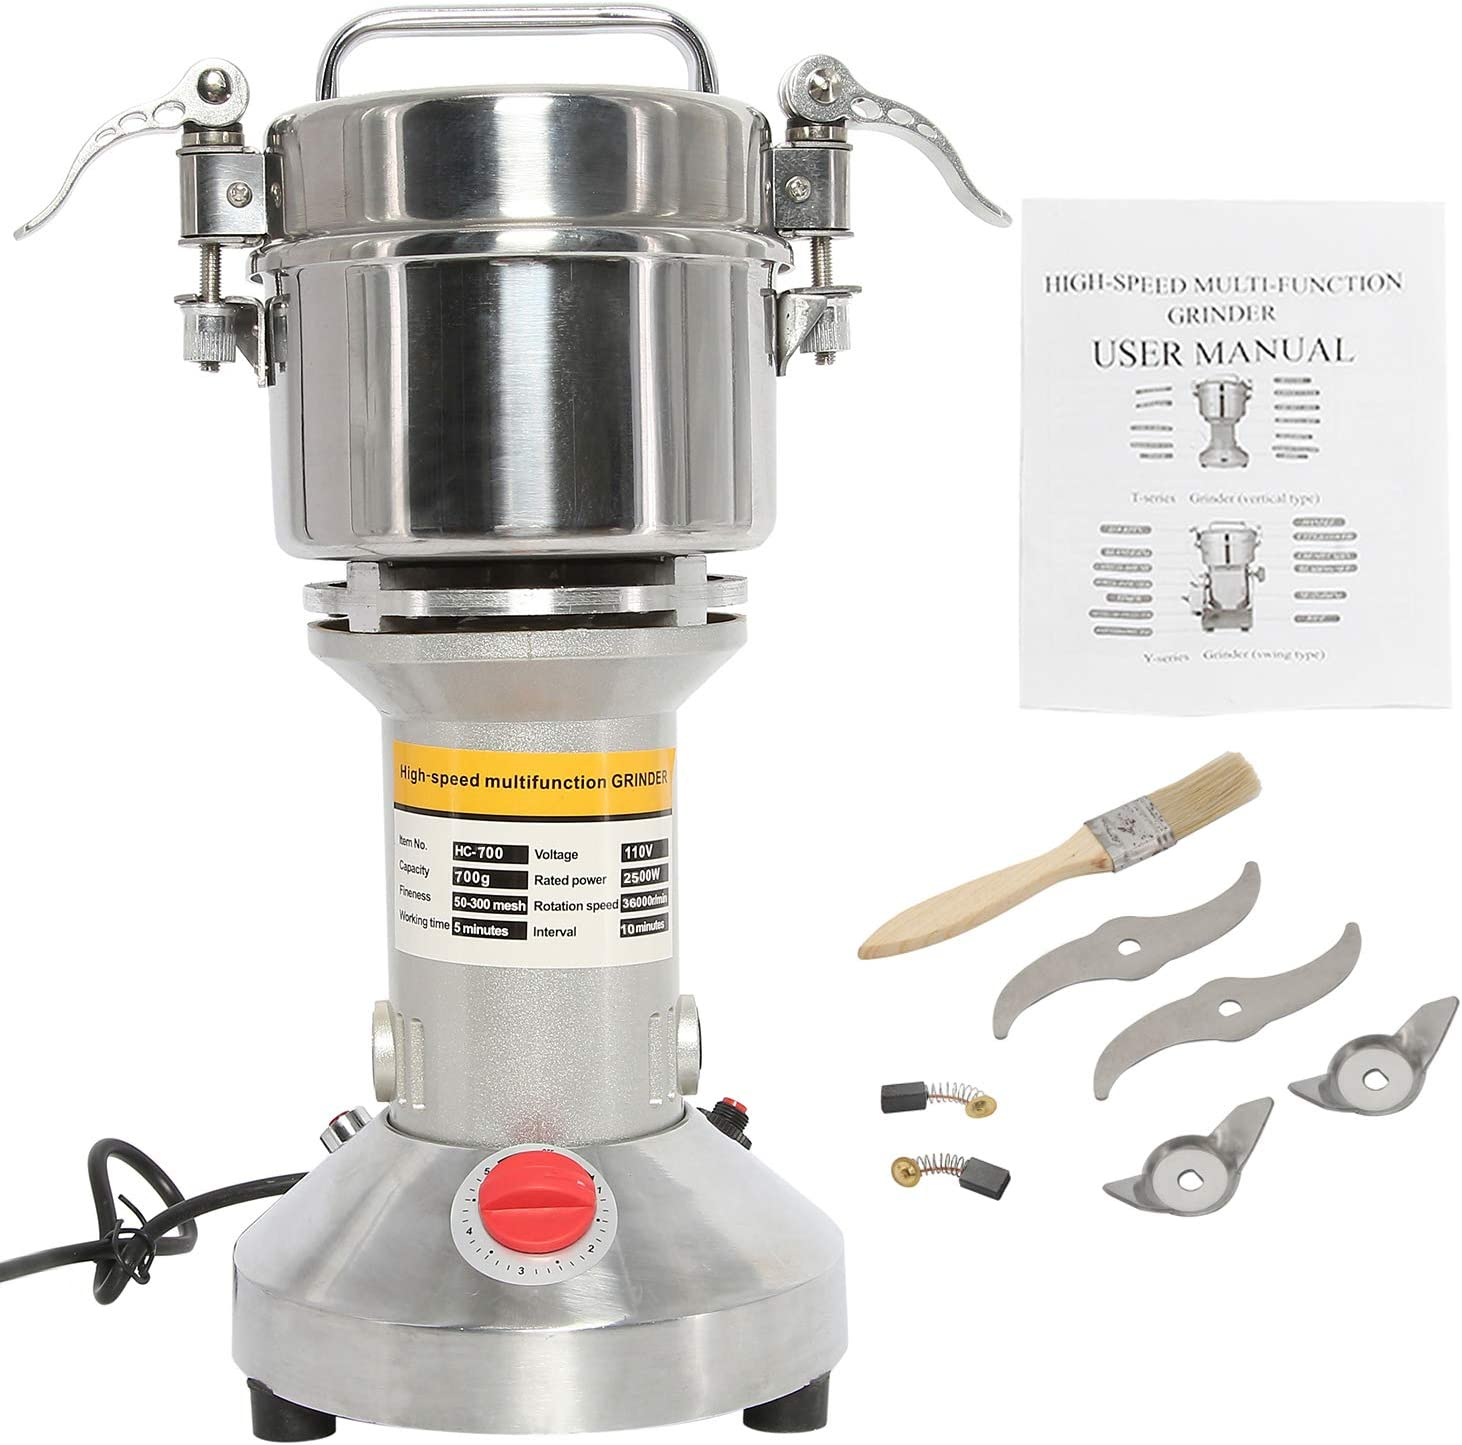 HYDDNice 700g Grain Mill Grinder 2500w 50-300 Mesh 36000RPM High Speed Electric Stainless Steel Grinder Spice Herb Cereals Corn Flour Powder Machine Commercial Grade